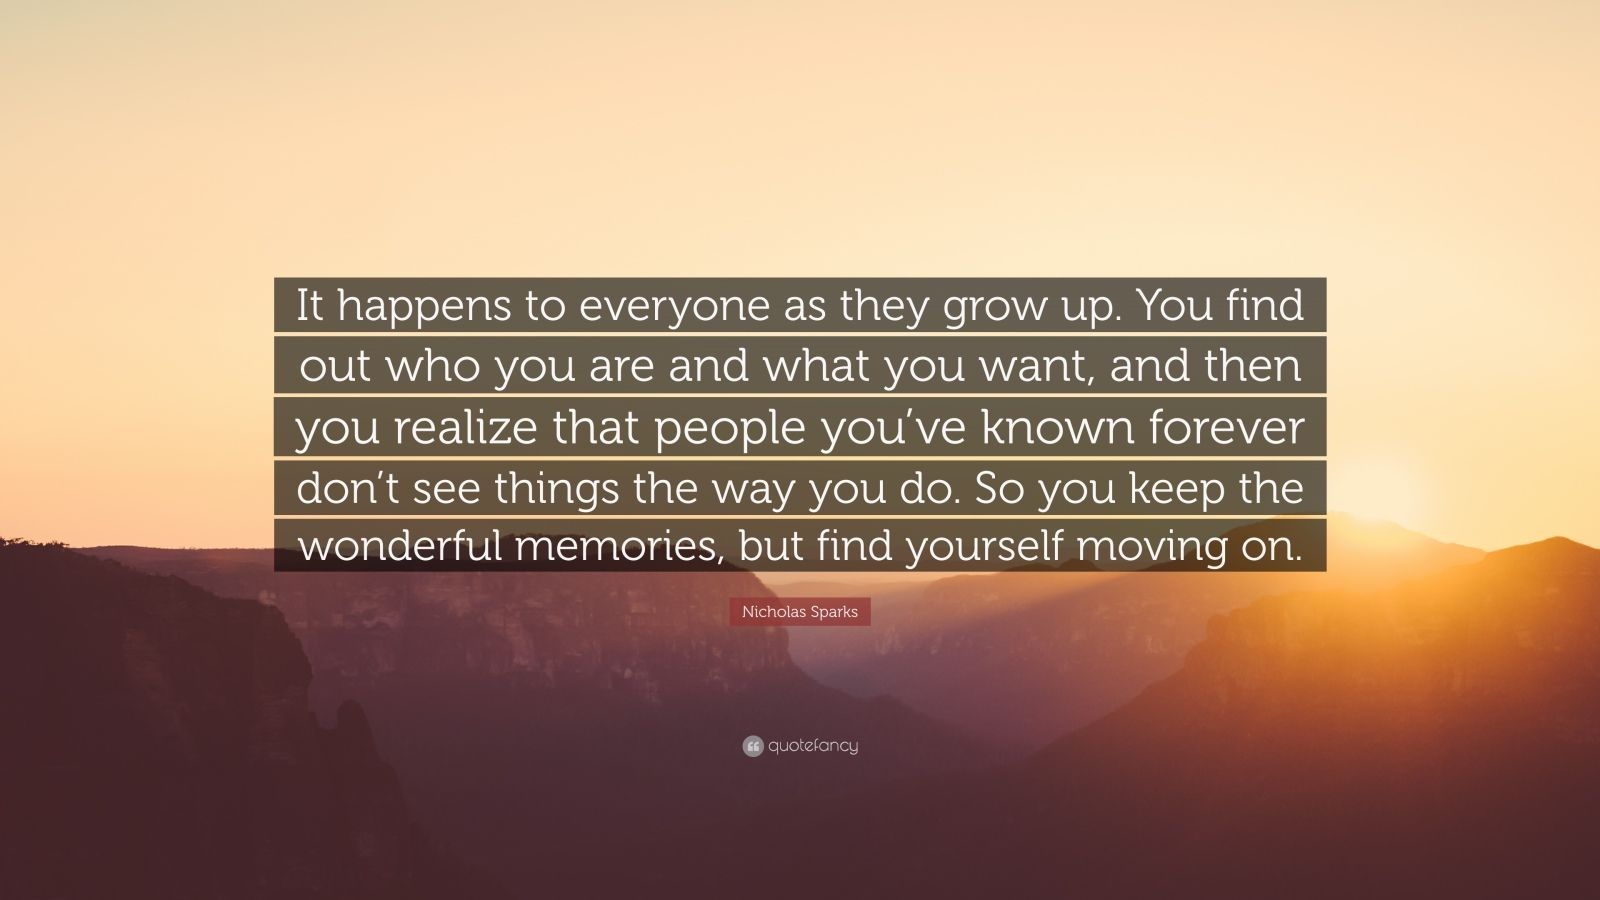 """Nicholas Sparks Quote: """"It happens to everyone as they grow up. You find out who you are and what you want, and then you realize that people you've known forever don't see things the way you do. So you keep the wonderful memories, but find yourself moving on."""""""